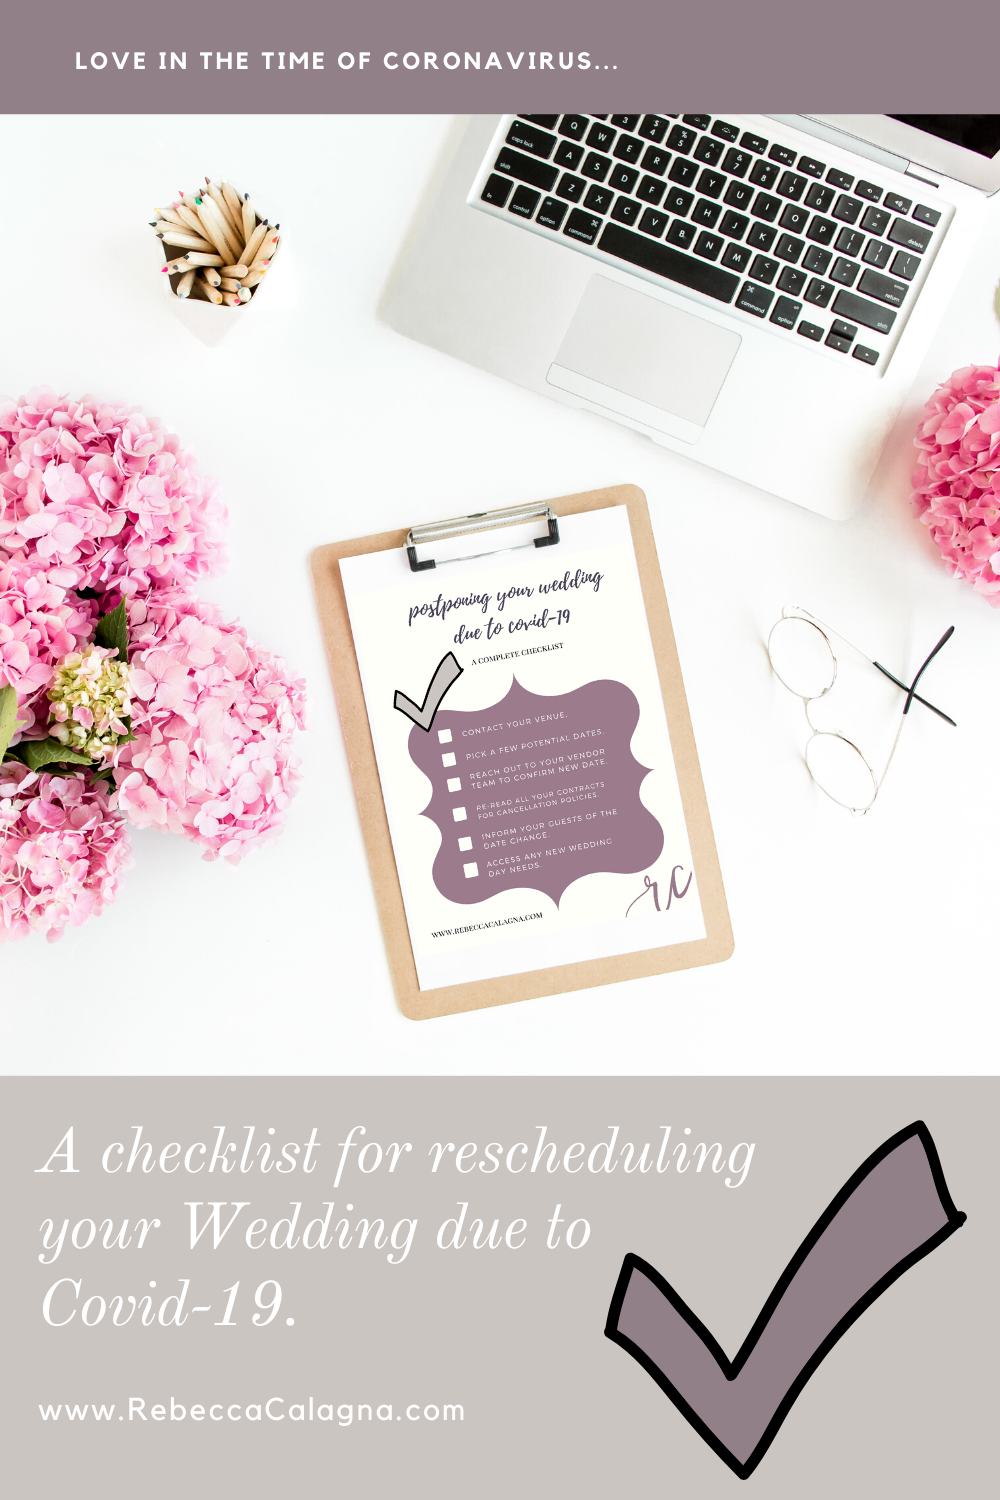 Complete Checklist for rescheduling your Wedding due to Covid-19.